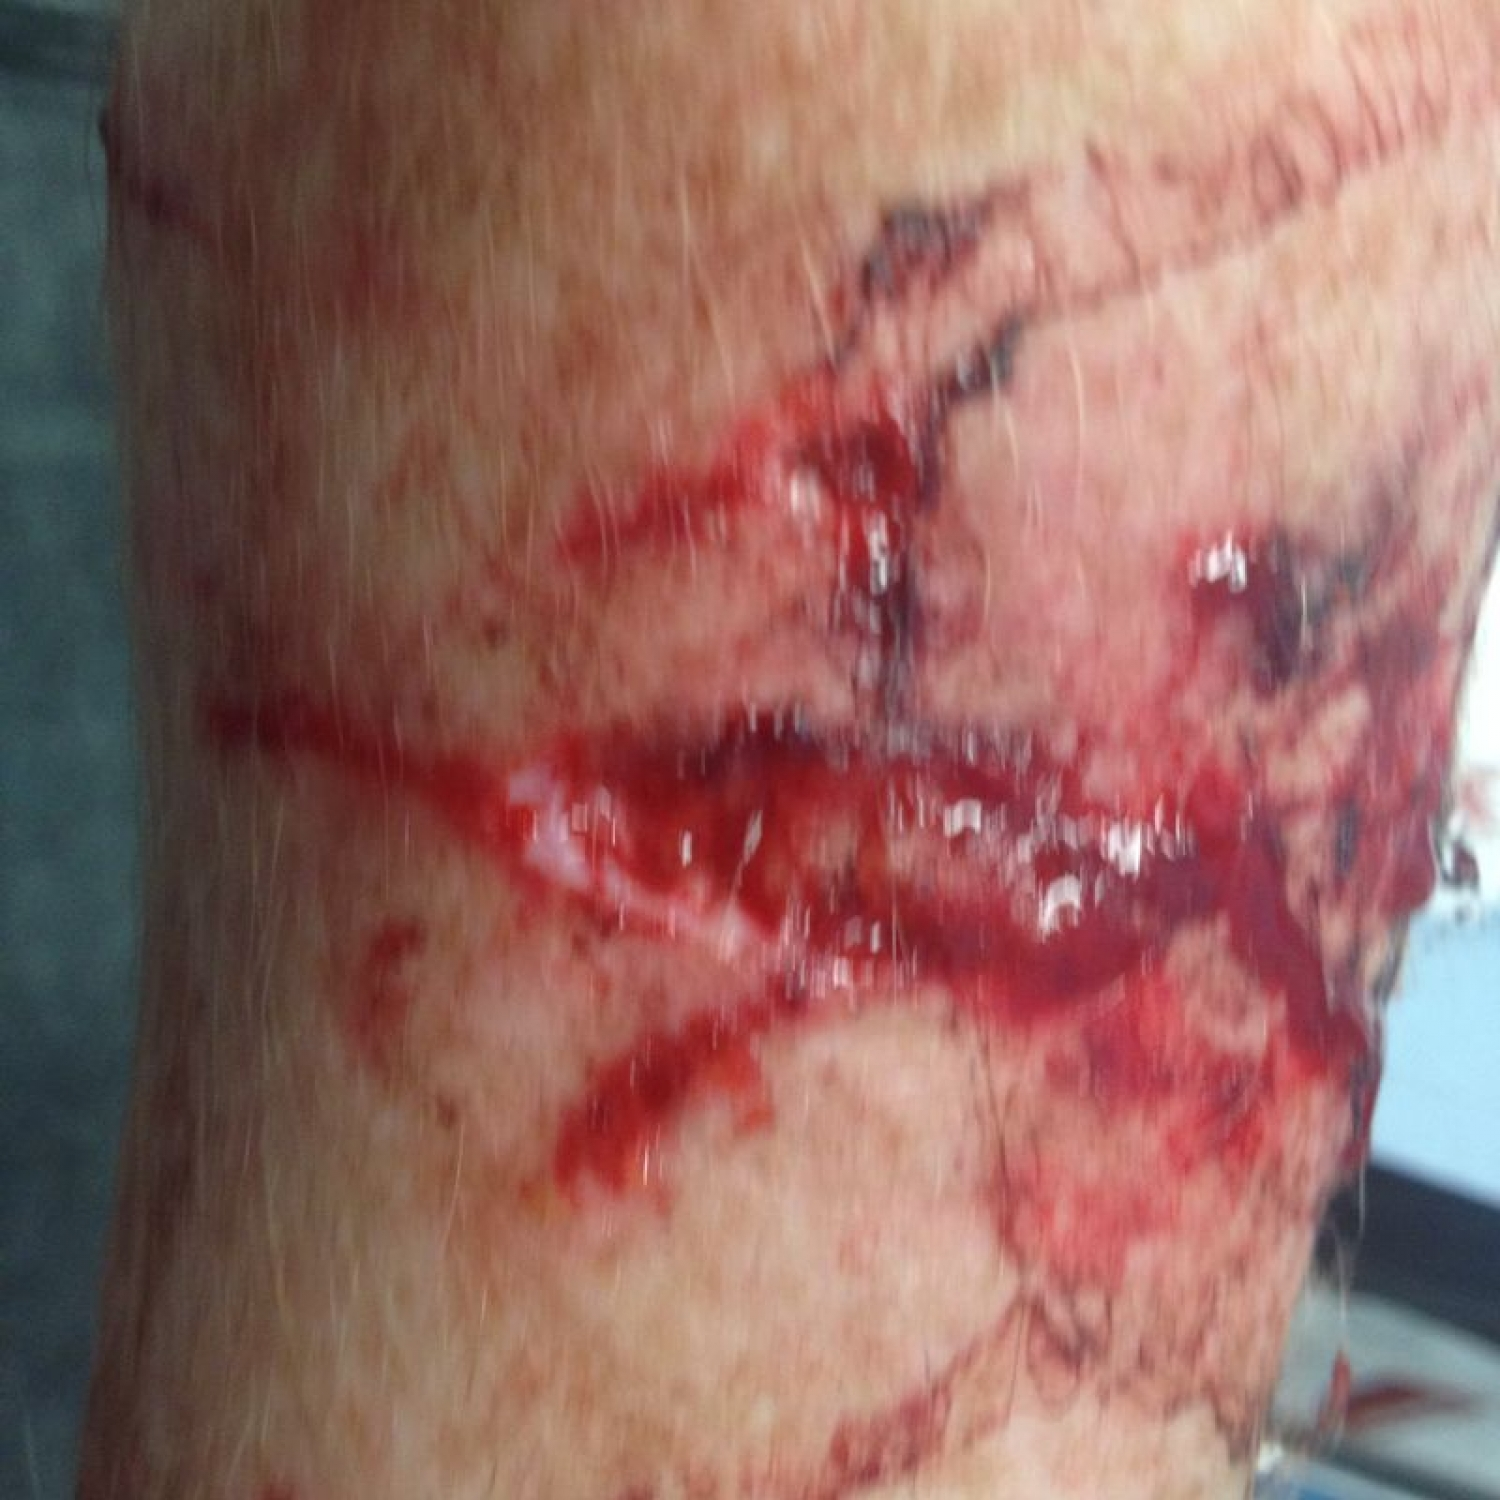 Shocking pictures of Basildon man who was mauled by a dog... as the owner escapes justice